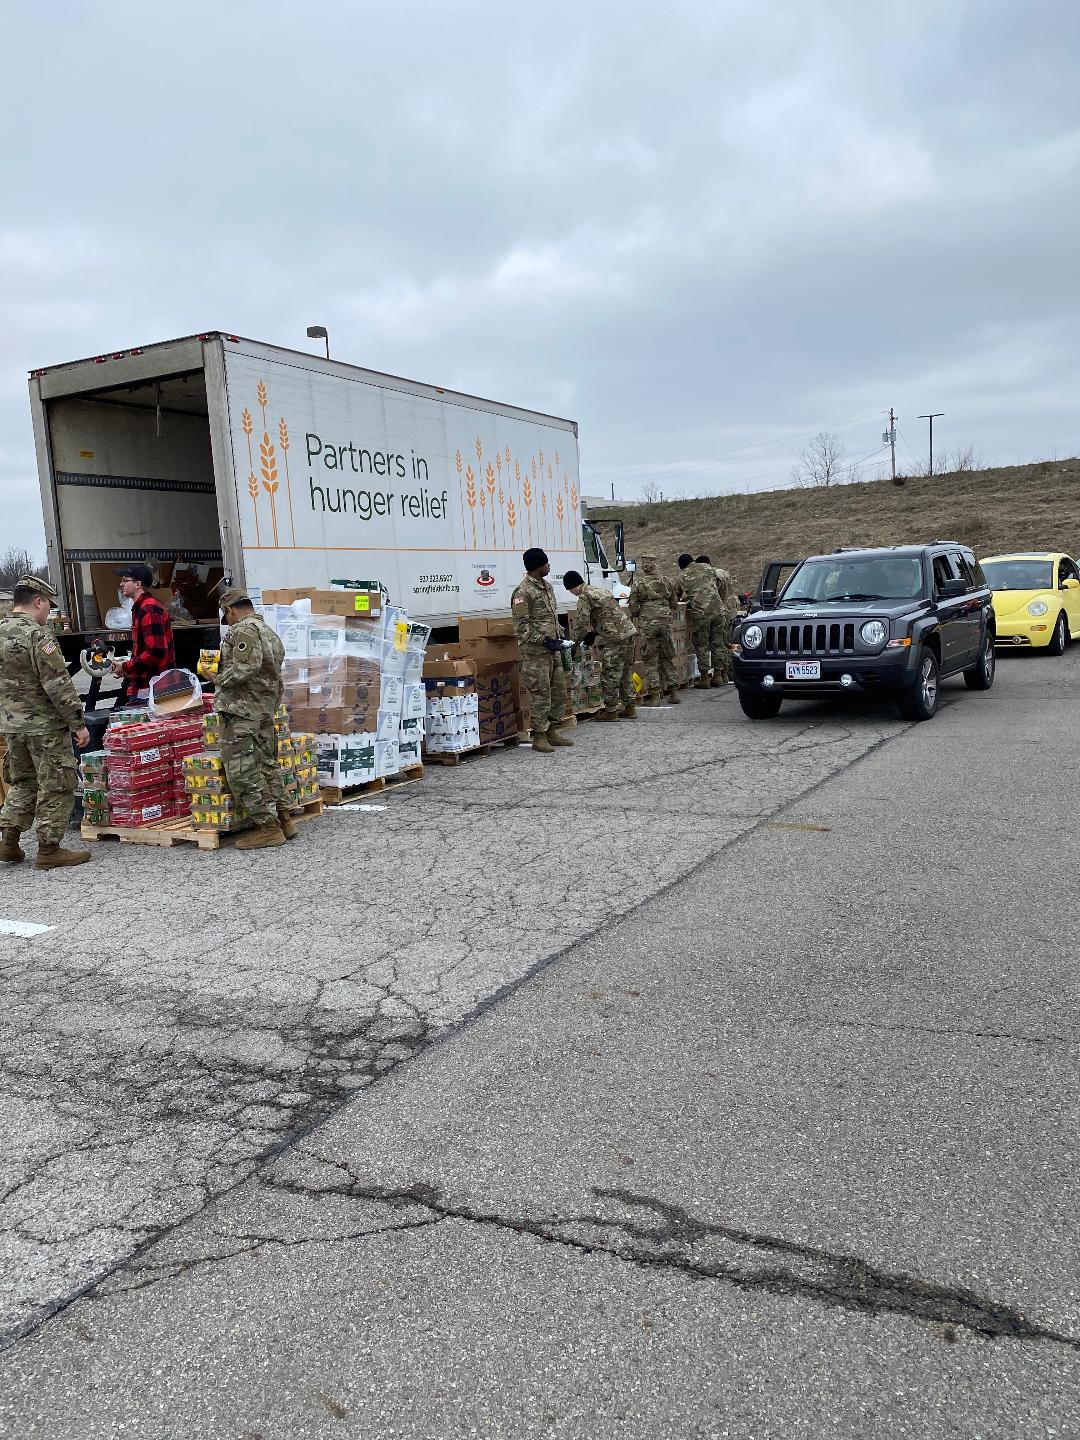 Soldiers pass out supplies from the Partners in Need semi to cars in drive through.